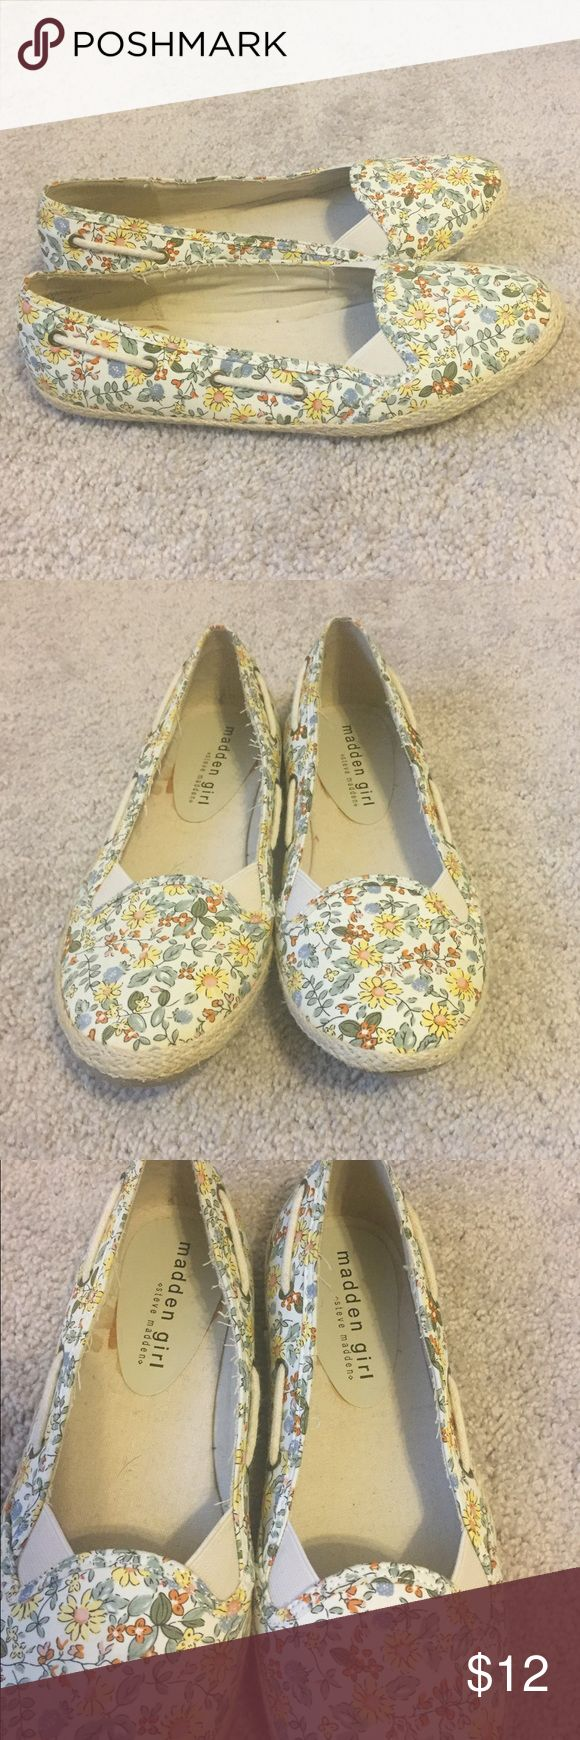 Madden Girl Floral Espadrilles Madden Girl floral fabric espadrilles. Worn maybe once, still in excellent condition! No blemishes on outer fabric (there is what looks like glue from the manufacturing on the inside of the shoe). Runs on size. Light and comfortable! Open to offers! Madden Girl Shoes Espadrilles